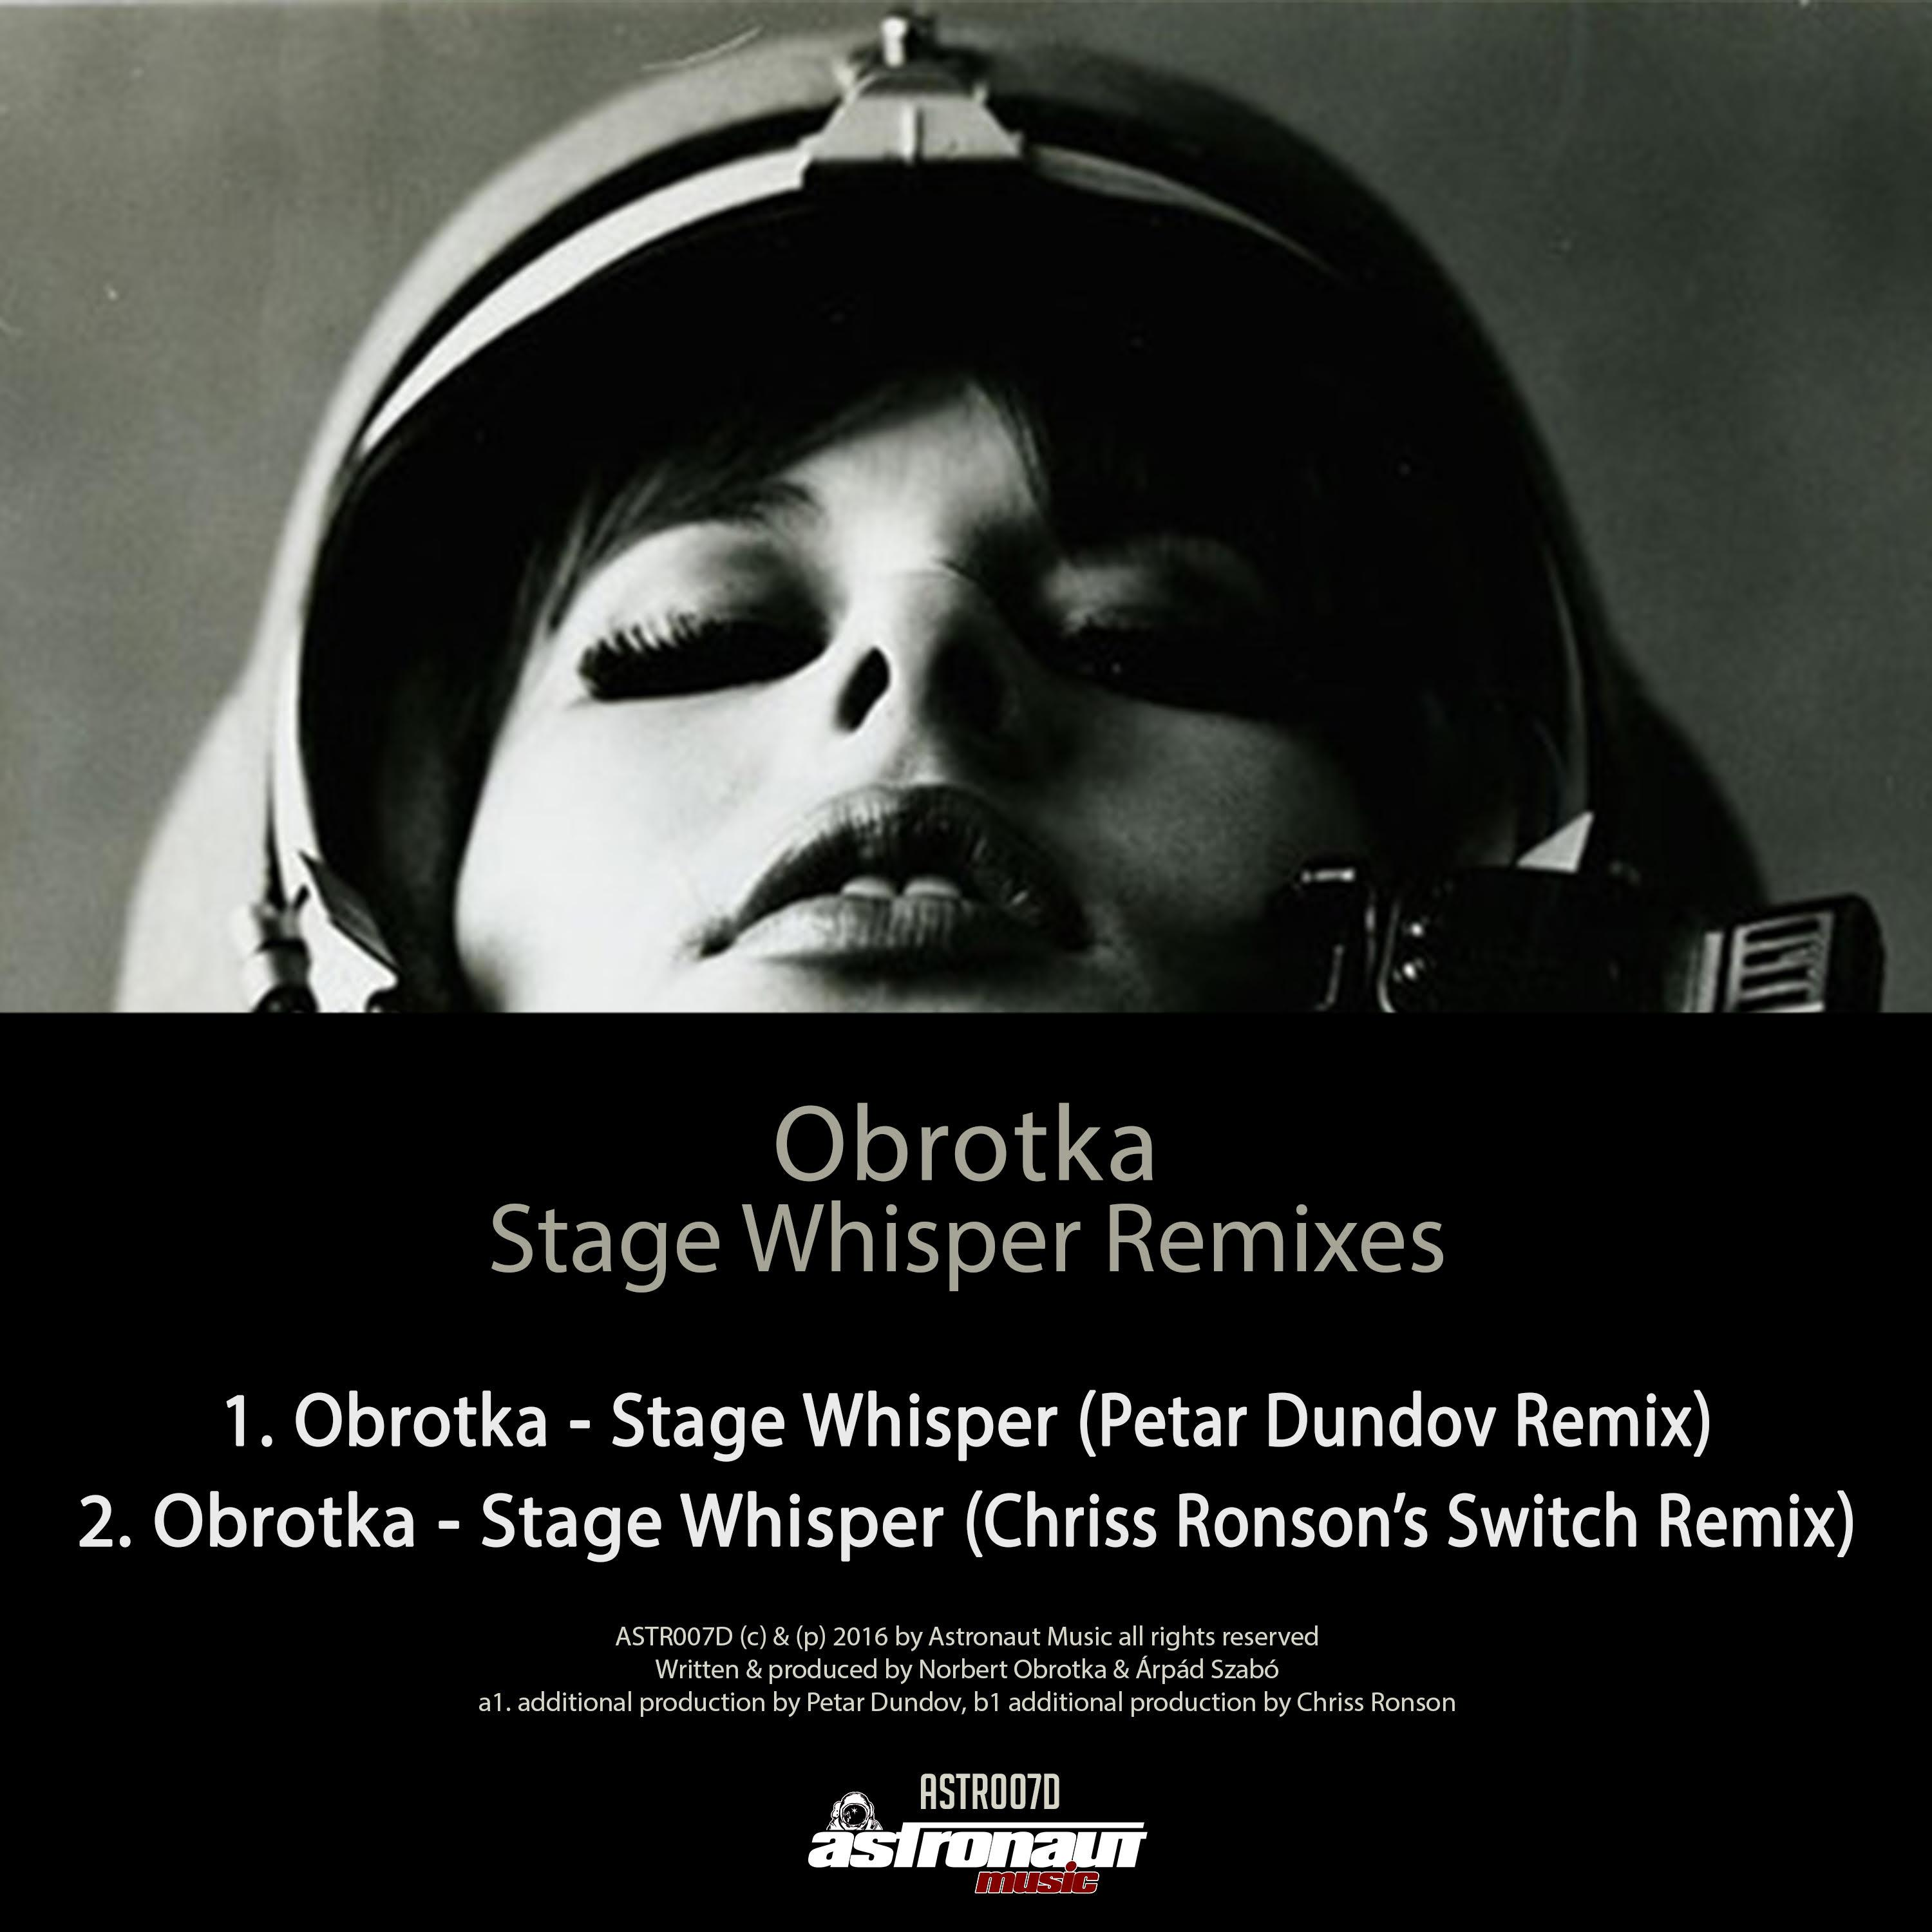 Stage Whisper (Chriss Ronson's Switch Remix)